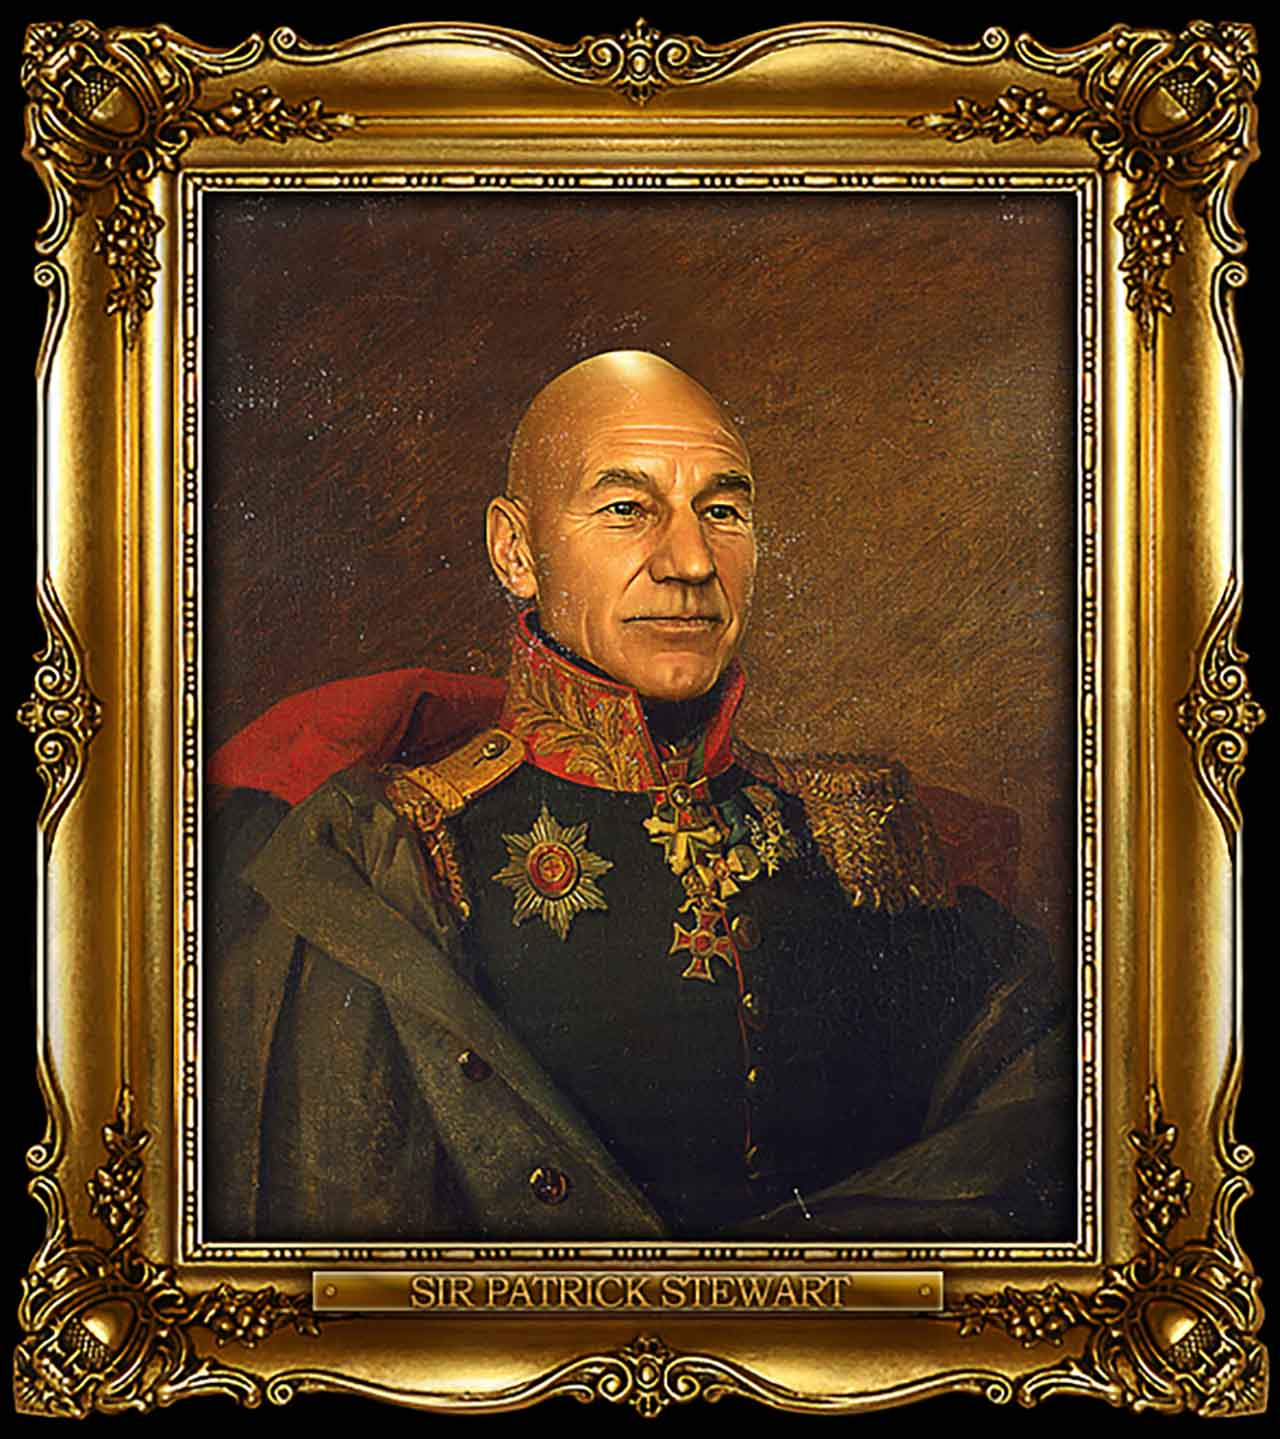 Artist Turns Famous Actors Into Russian Generals - Sir Patrick Stewart